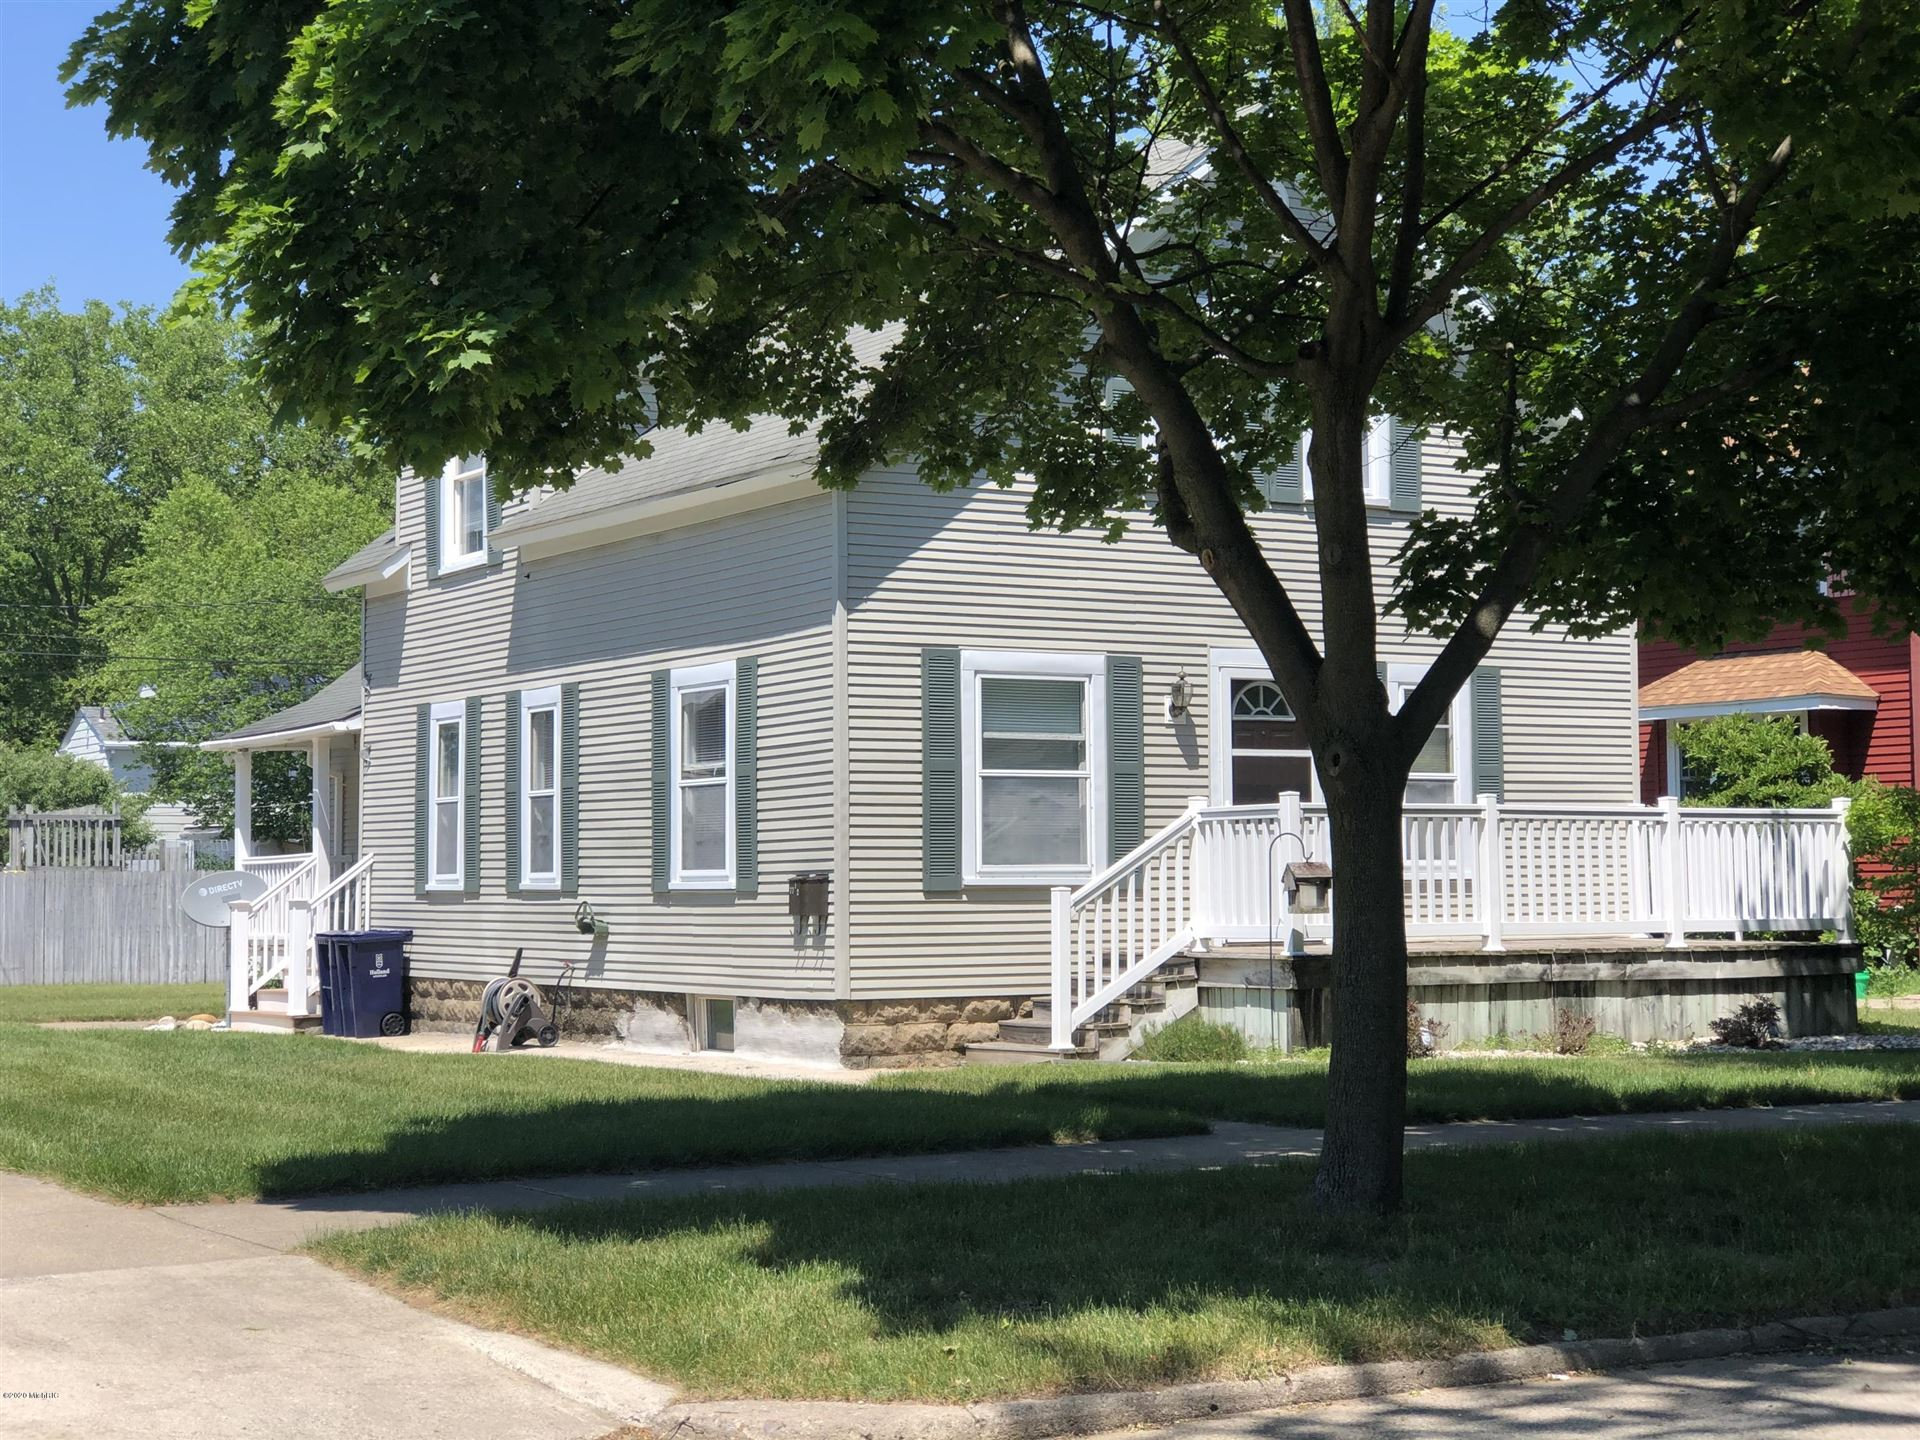 77 E 23rd Street, Holland, MI 49423 - MLS#: 20023266